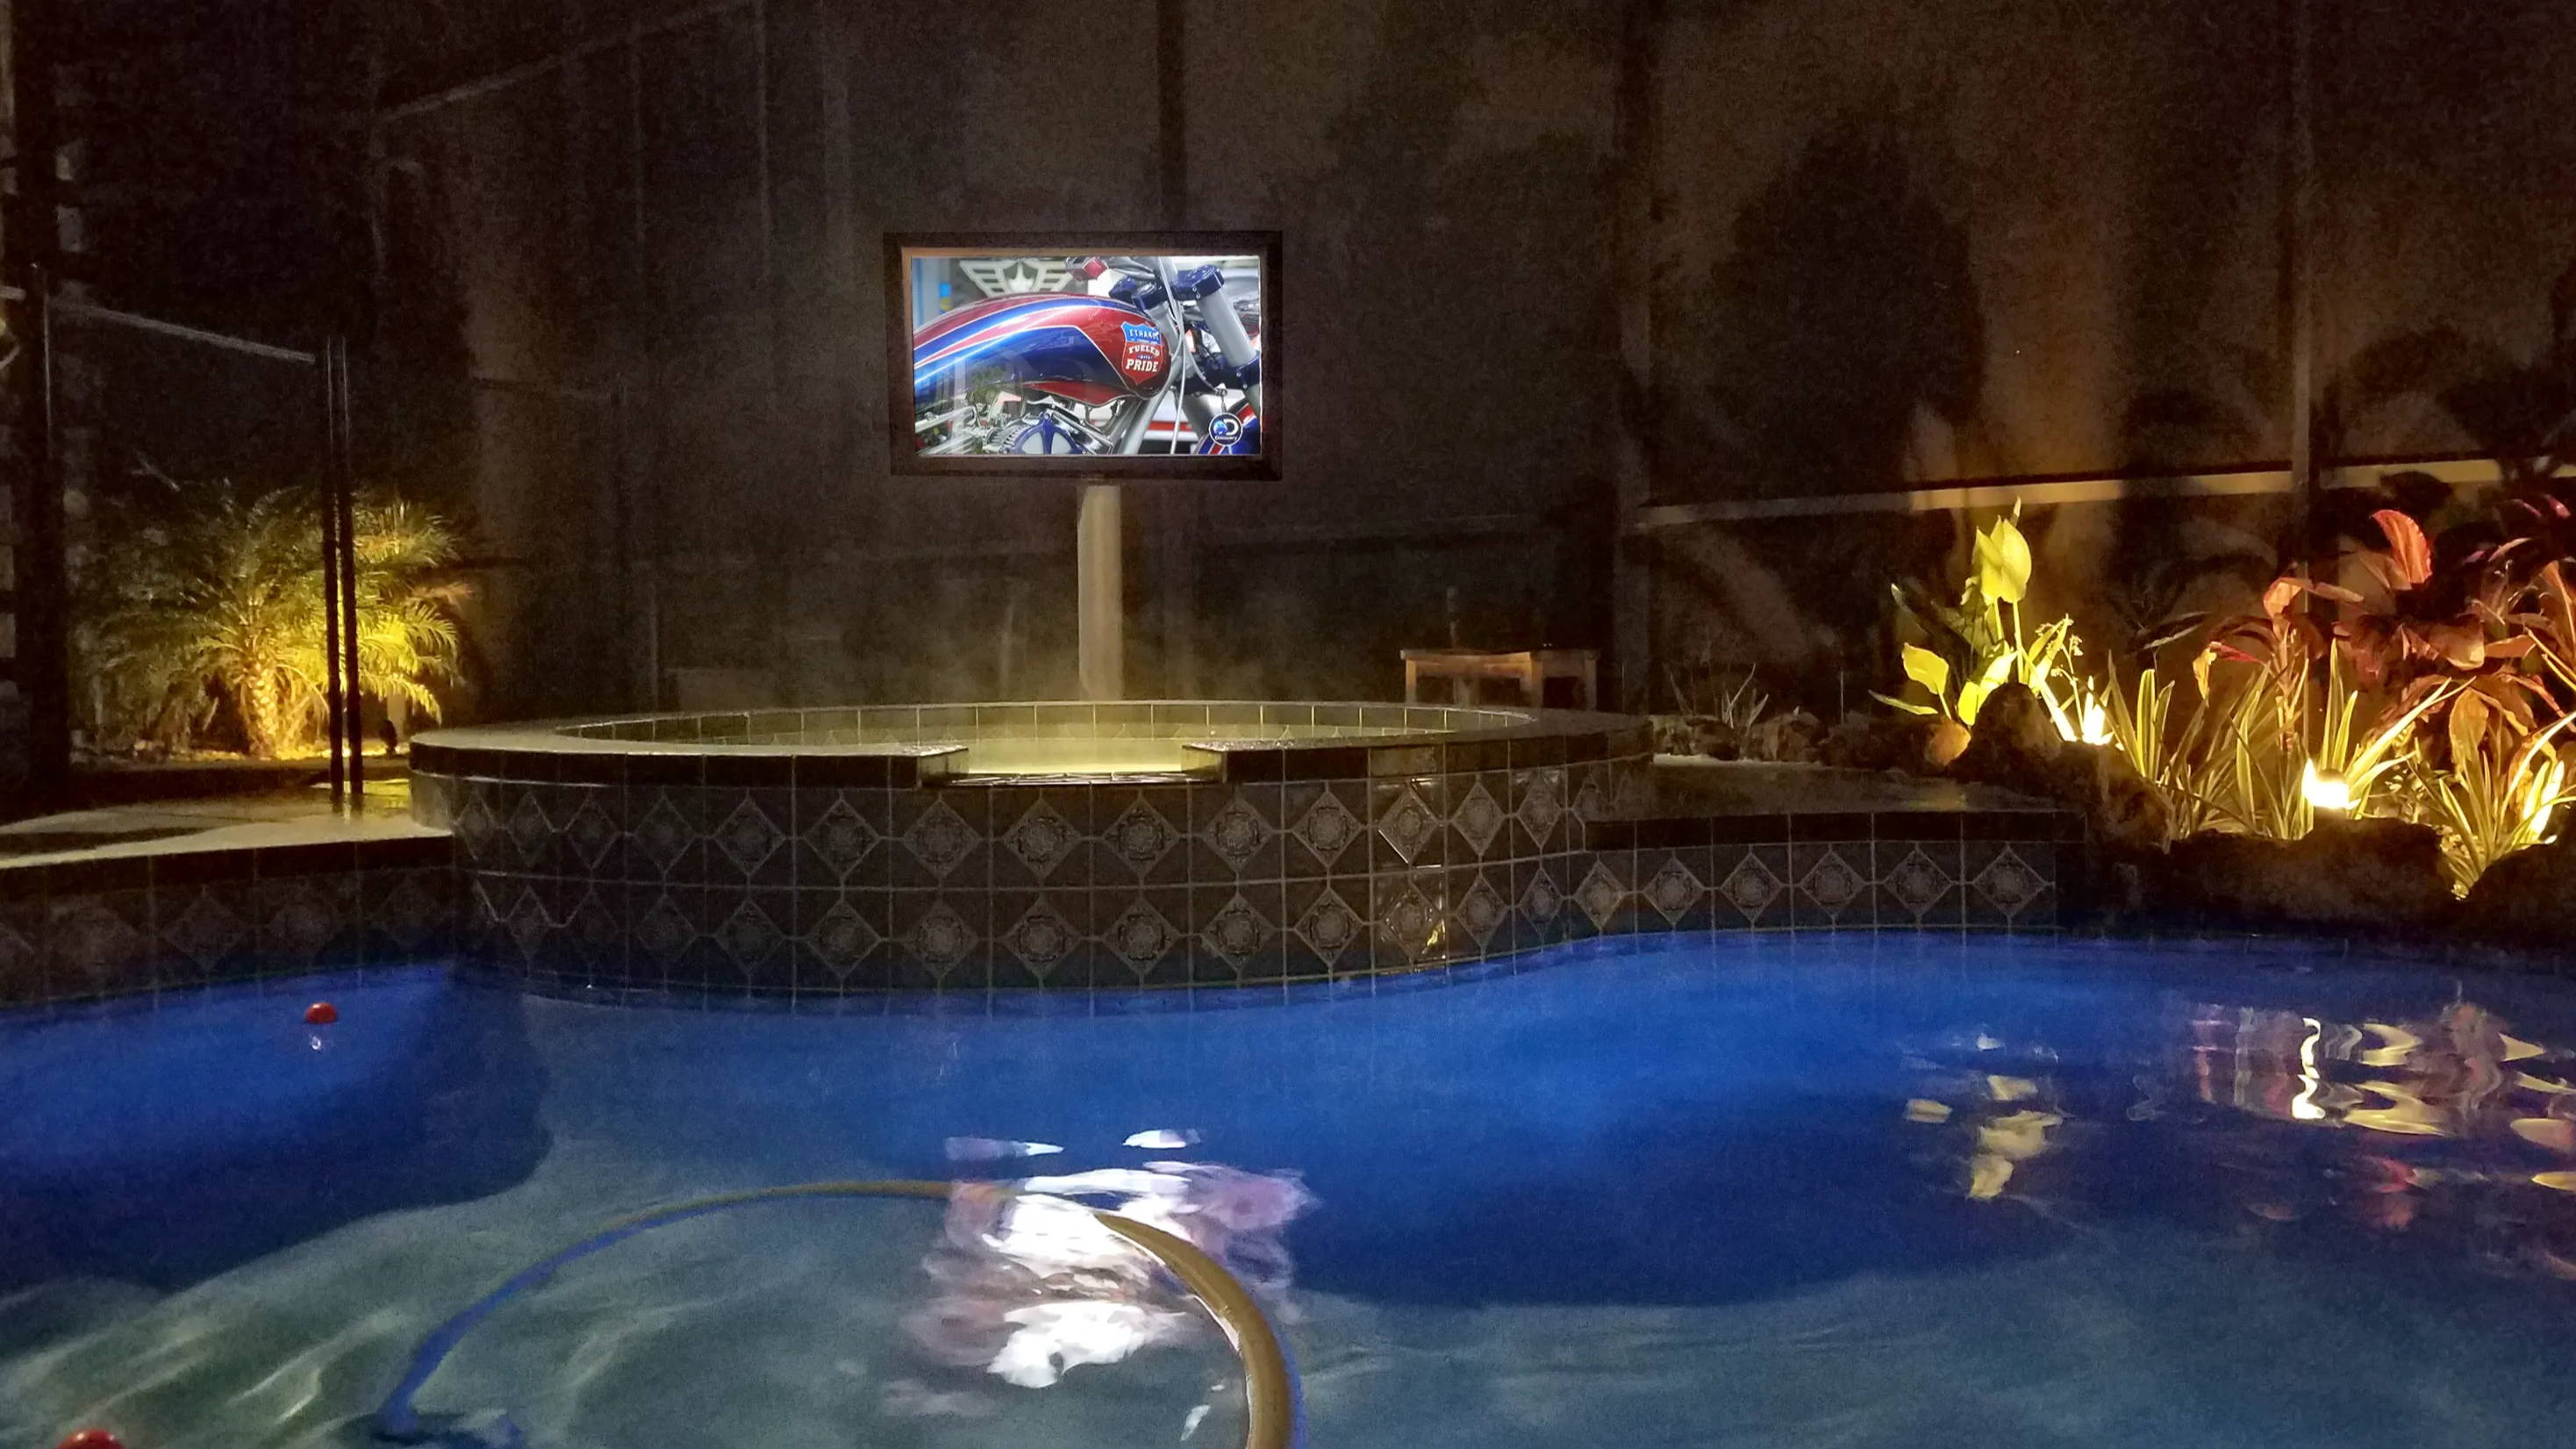 The TV Shield outdoor TV mounting on cart by pool